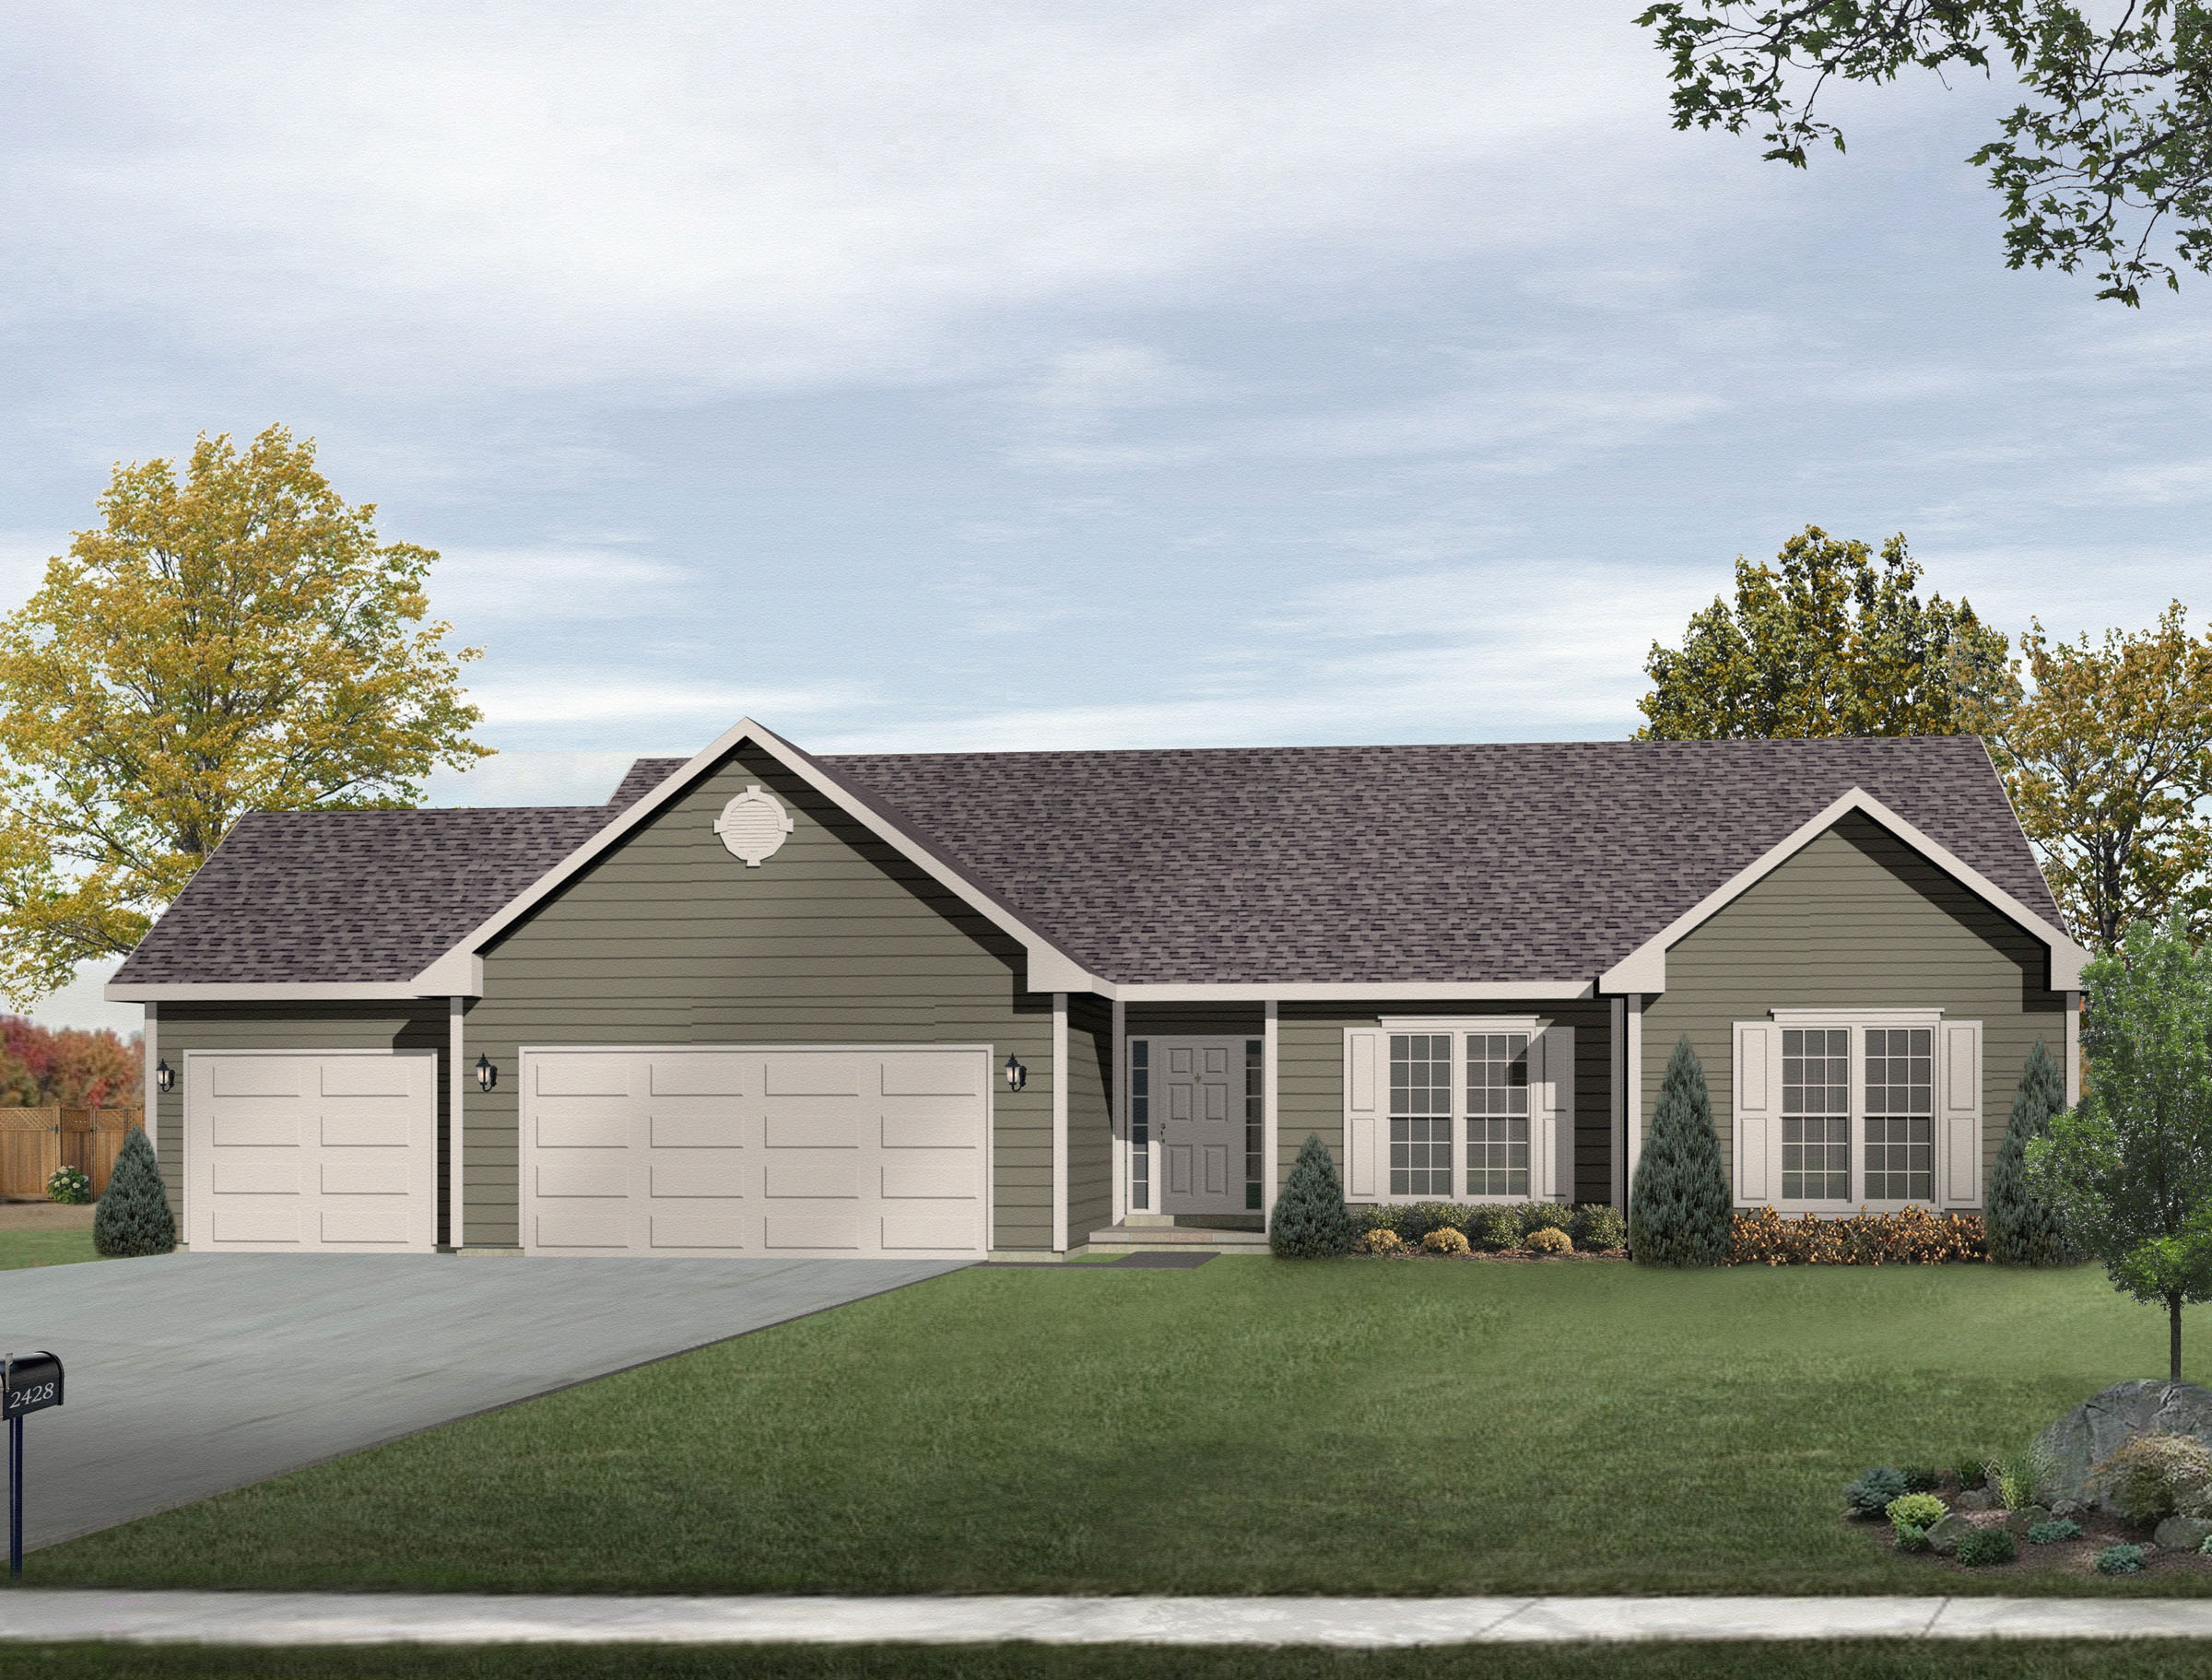 Ranch living with three car garage 2292sl for 3 car garage house plans